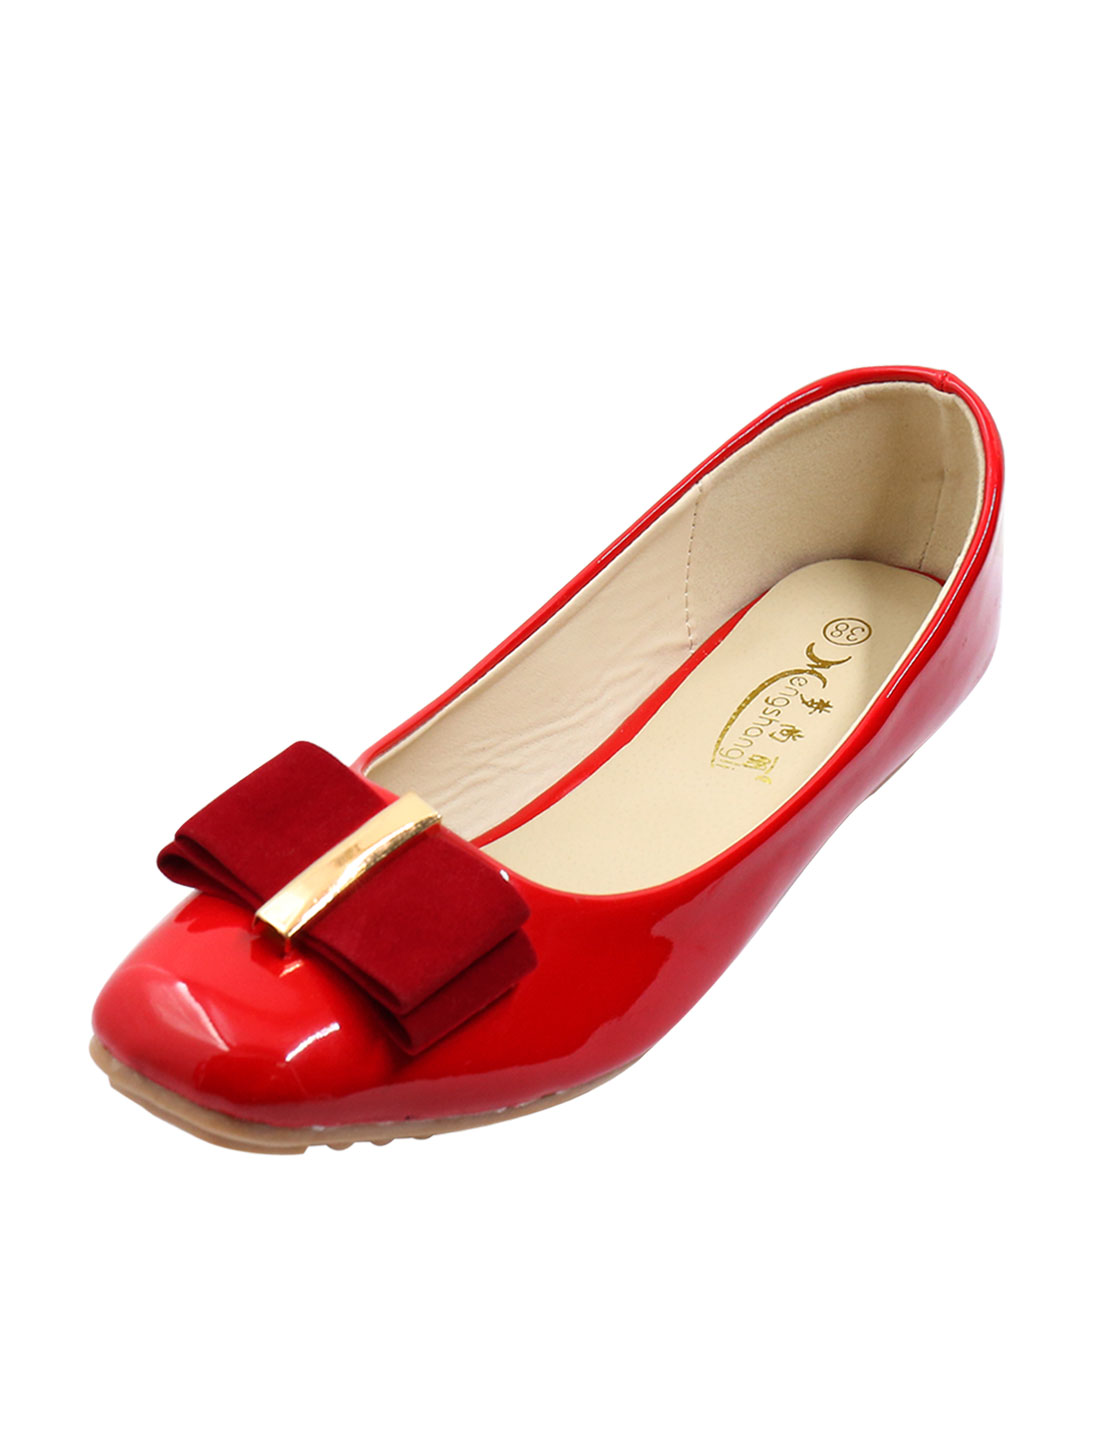 Women Metallic Center Ribbon Bow Square Toe Casual Flats Red US 7.5